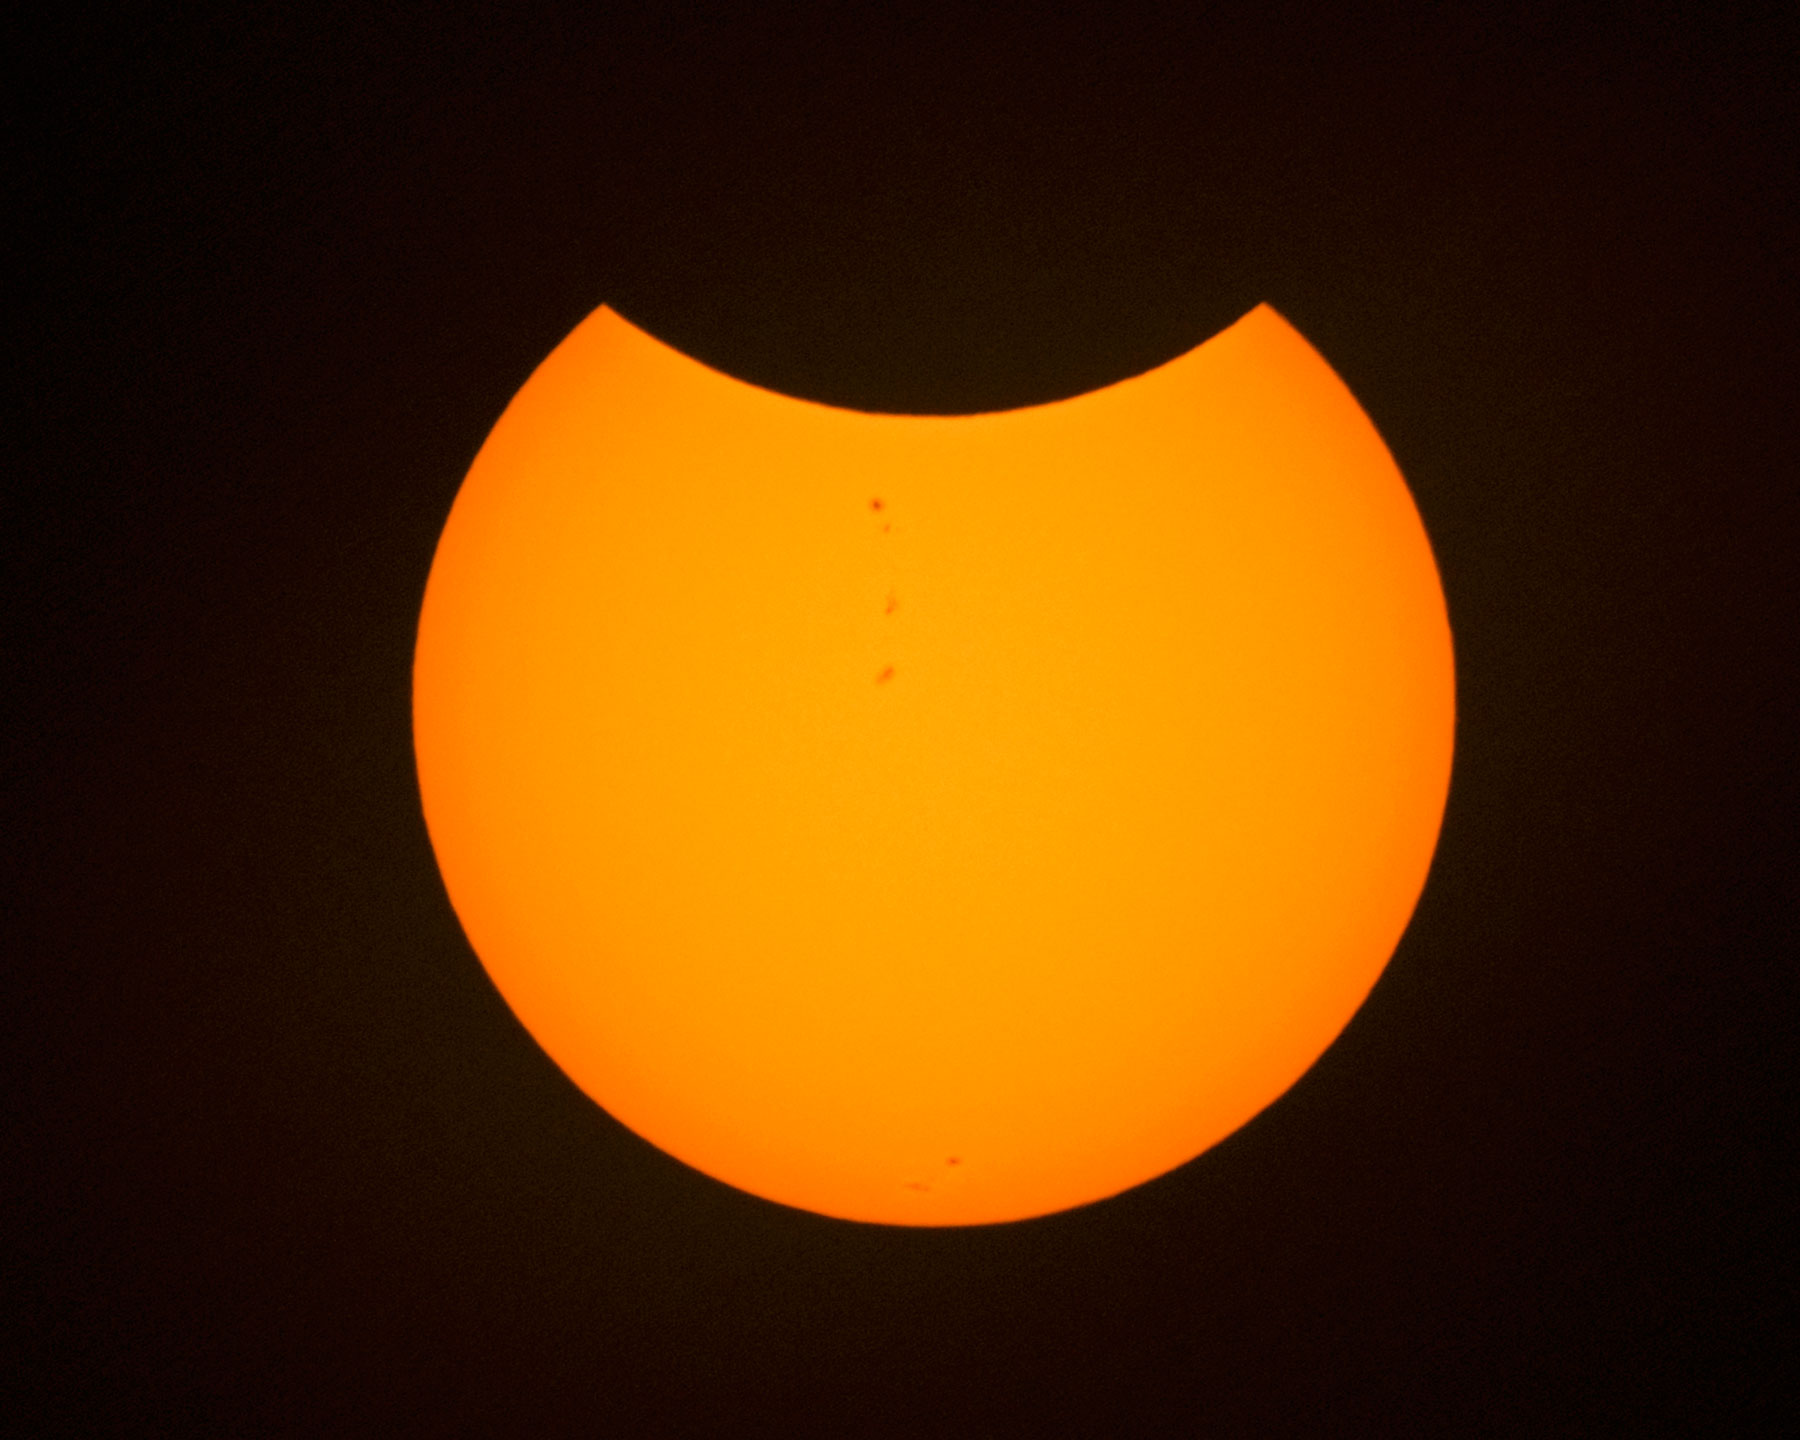 eclipse_partial_orange